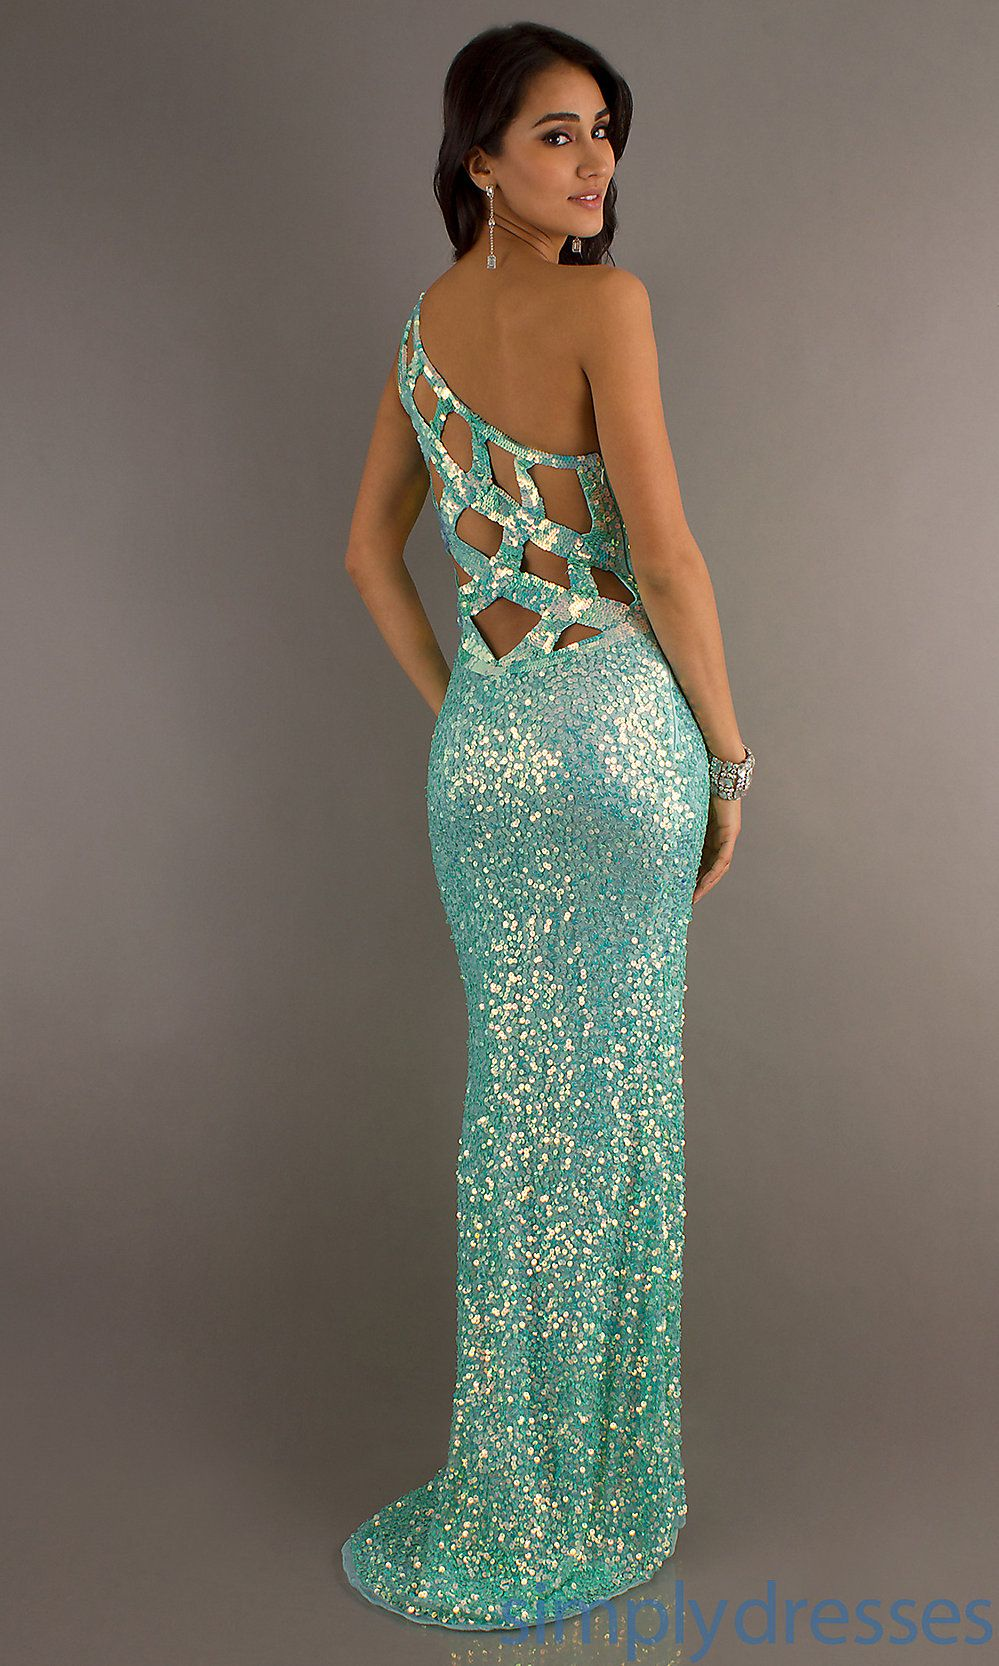 Primavera prom dresses pinterest sequins gowns and